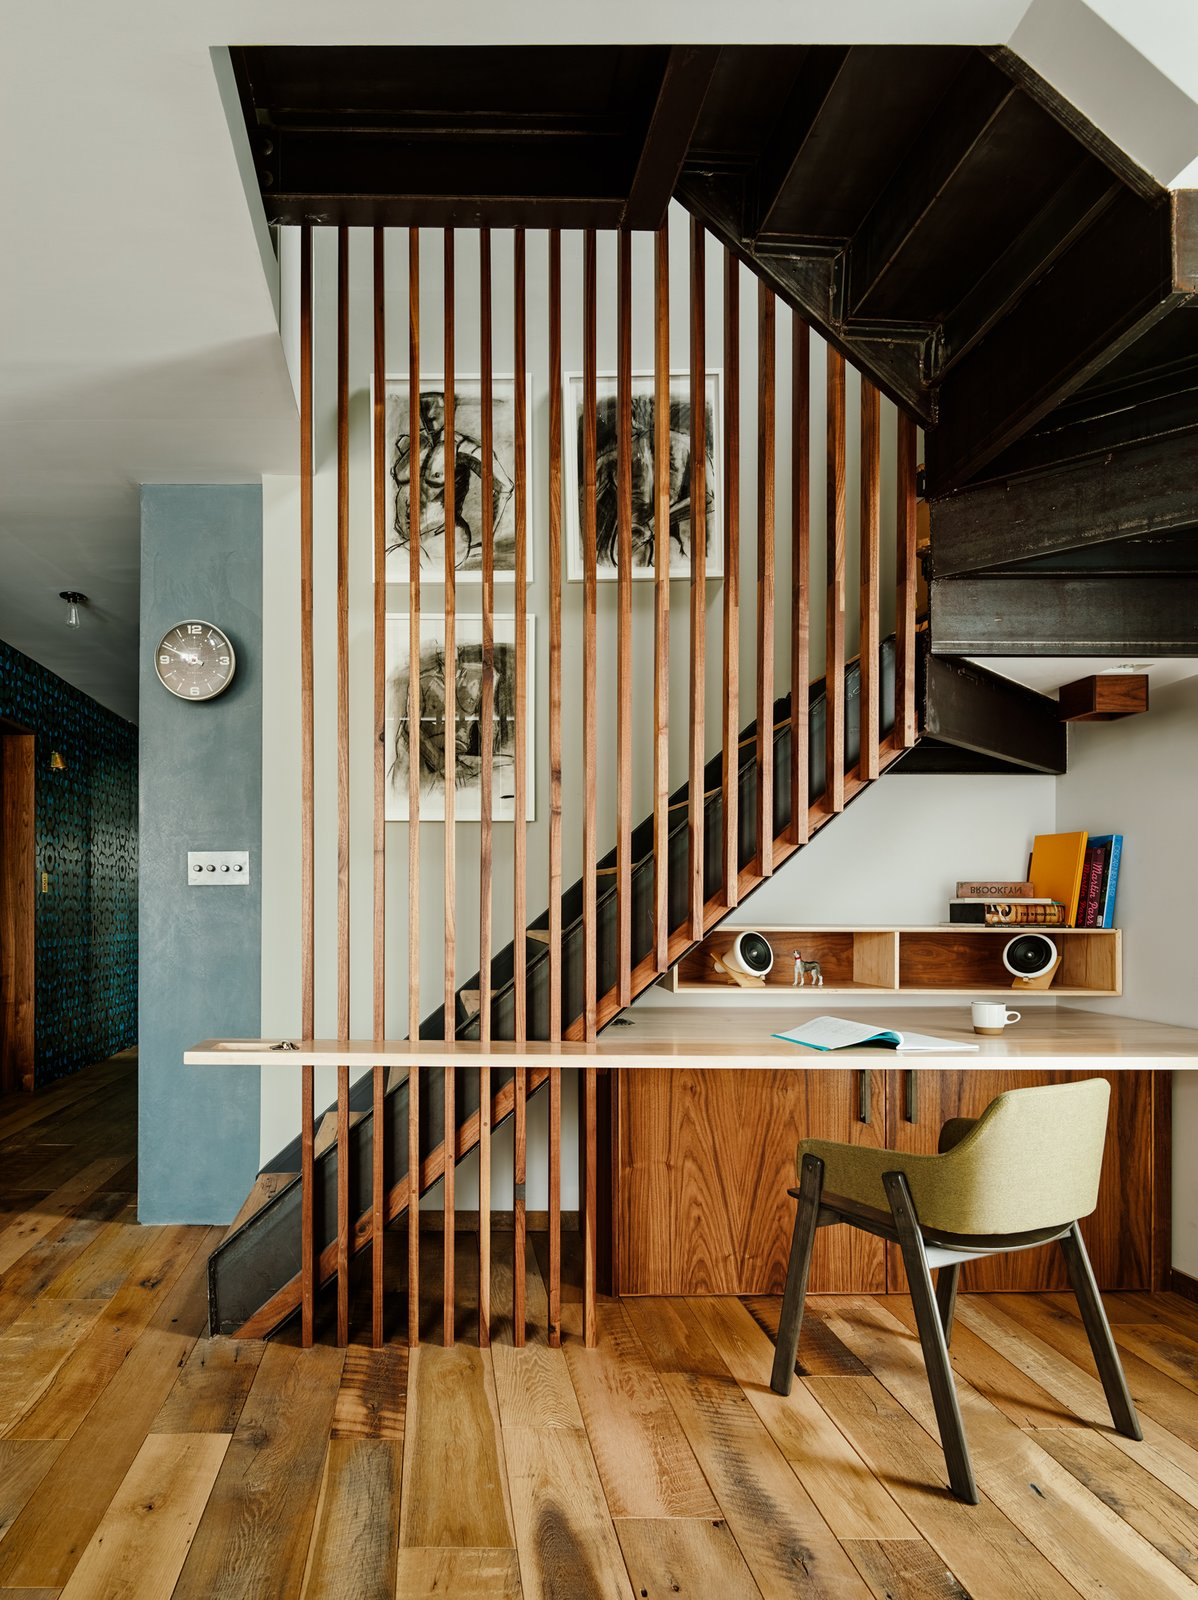 Zames carved out a small custom office area under the stairs that lead up to the roof. Home Offices and Workspaces We Love by Matthew Keeshin